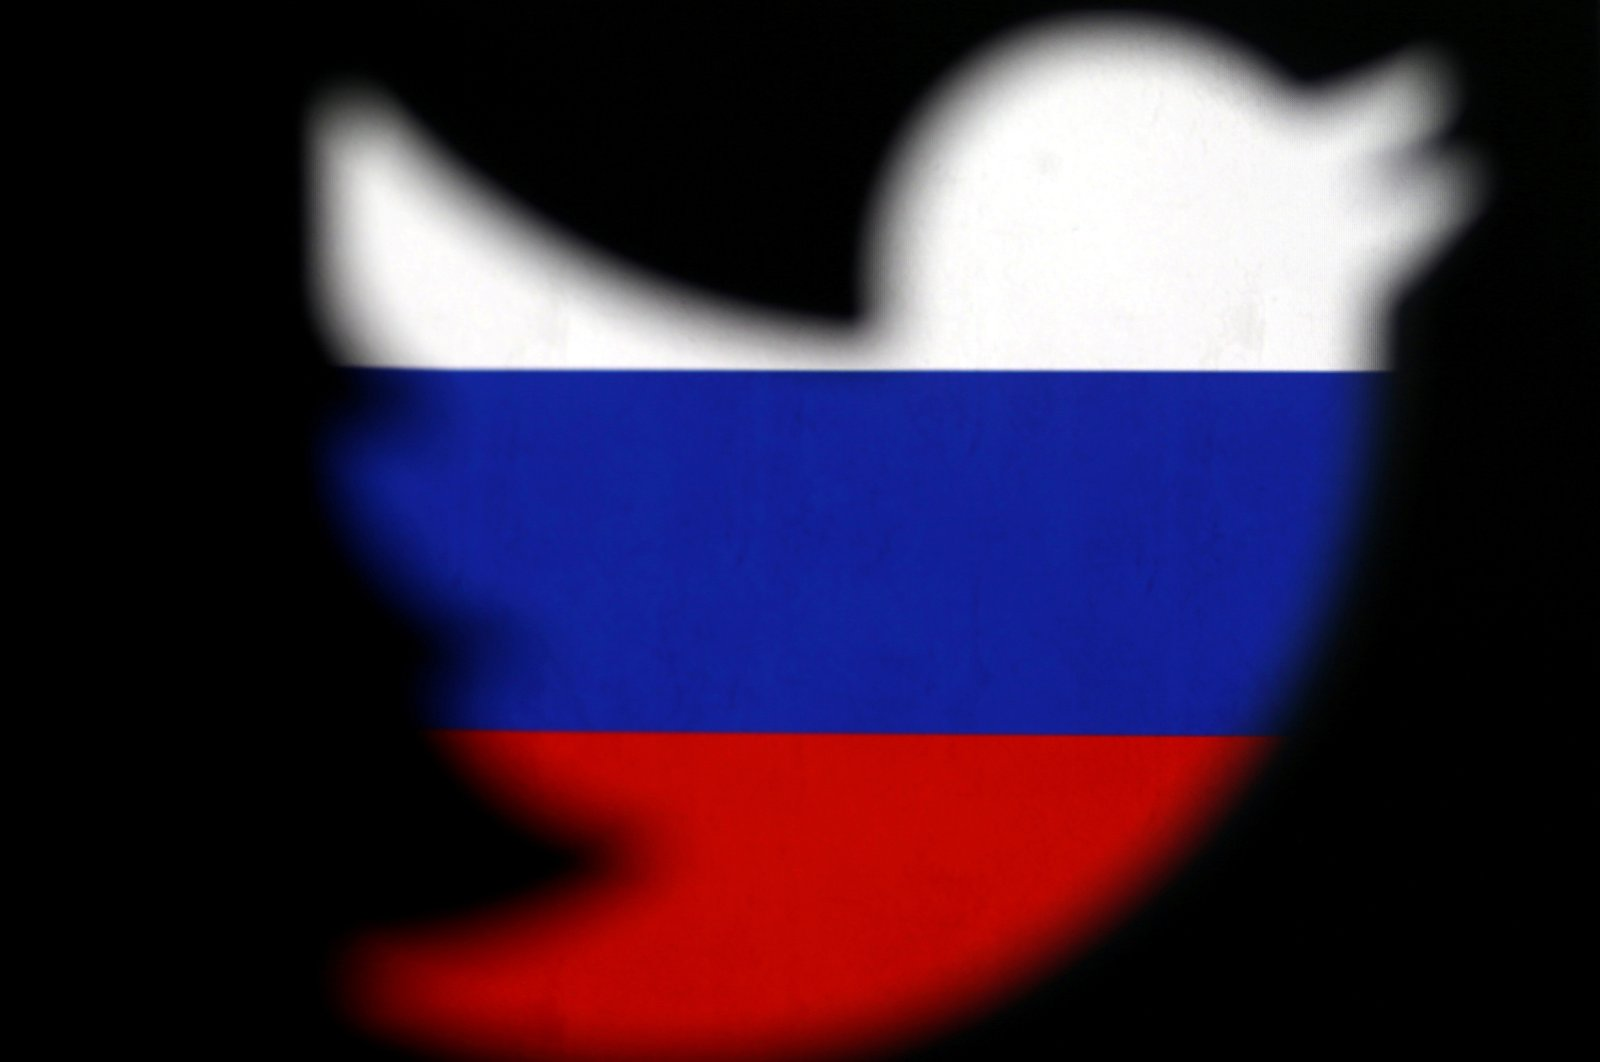 A 3D-printed Twitter logo displayed in front of the Russian flag is seen in this illustration picture, Oct. 27, 2017. (Reuters Photo)